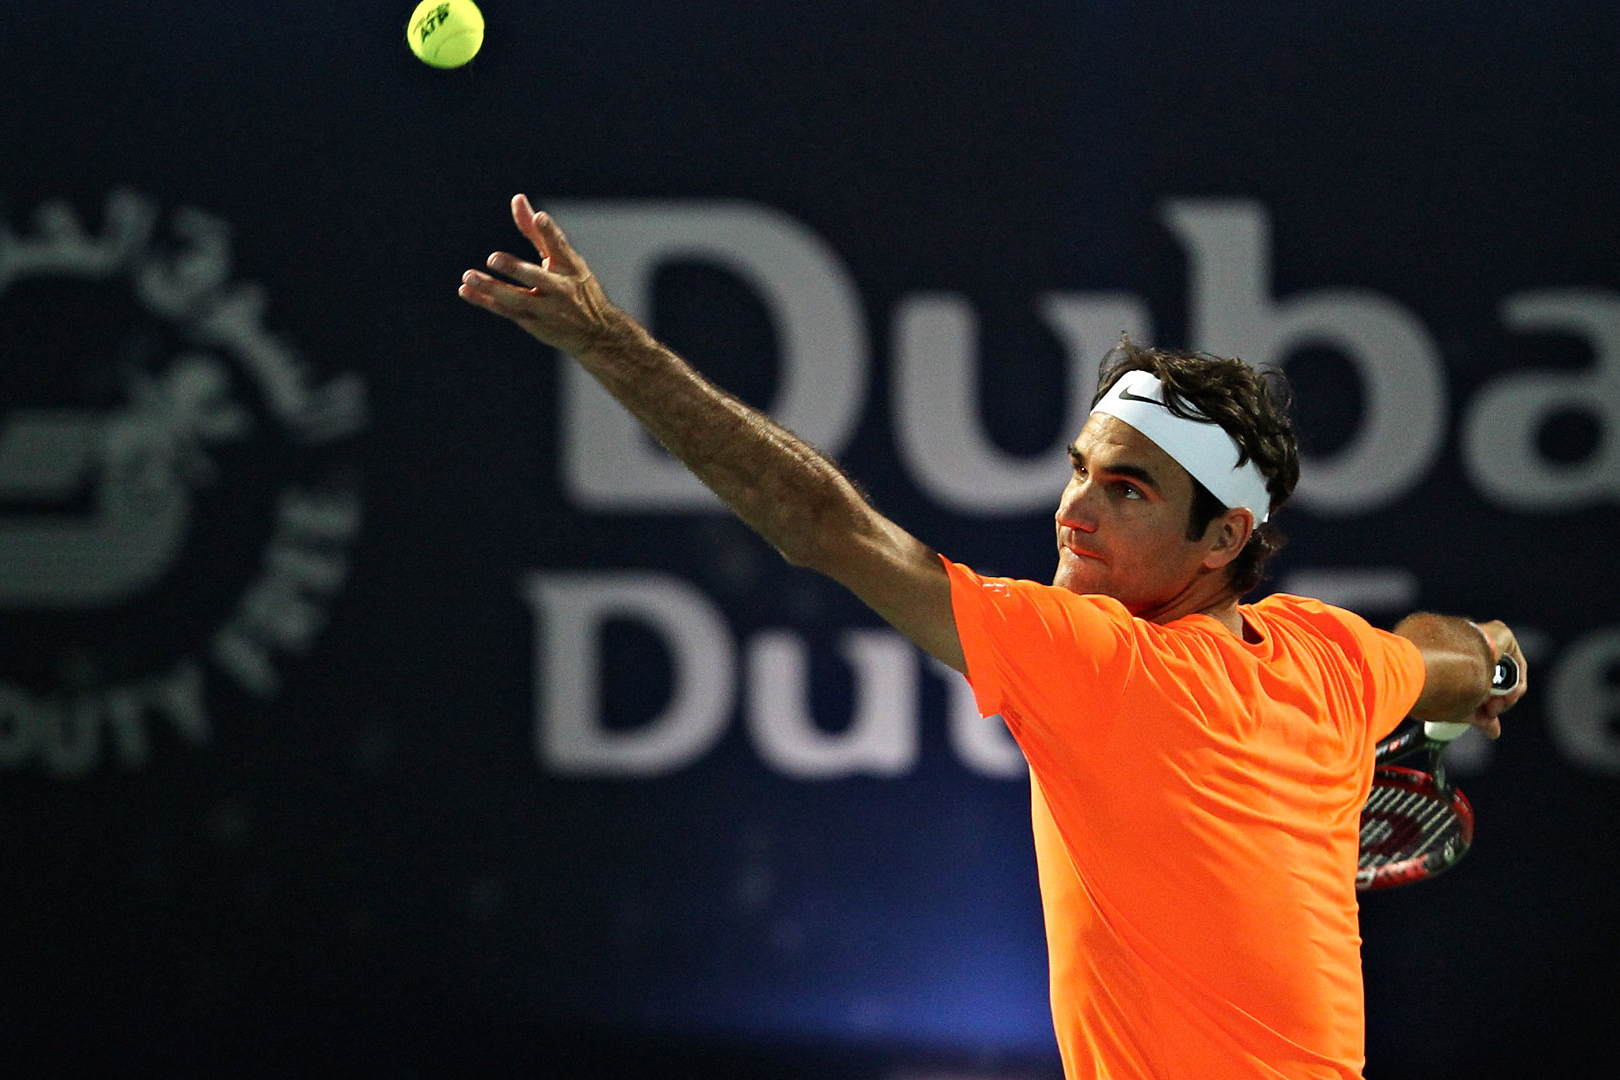 Watch Roger Federer Serve Up His 9,000th Ace